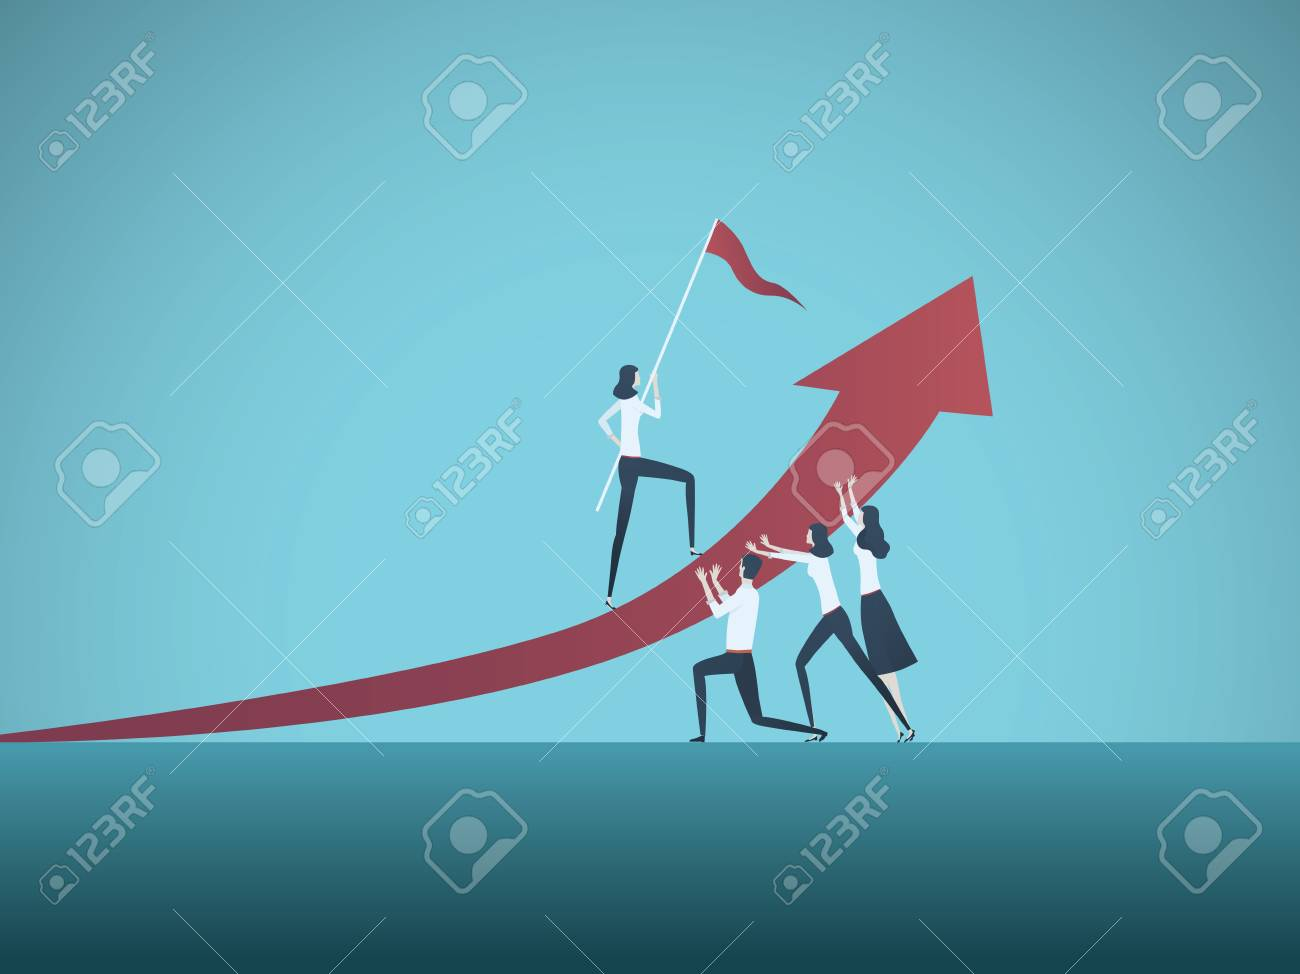 Business objective, goal or target vector concept. Team of business people working together. Symbol of growth, teamwork, challenge. Eps10 vector illustration. - 107747311